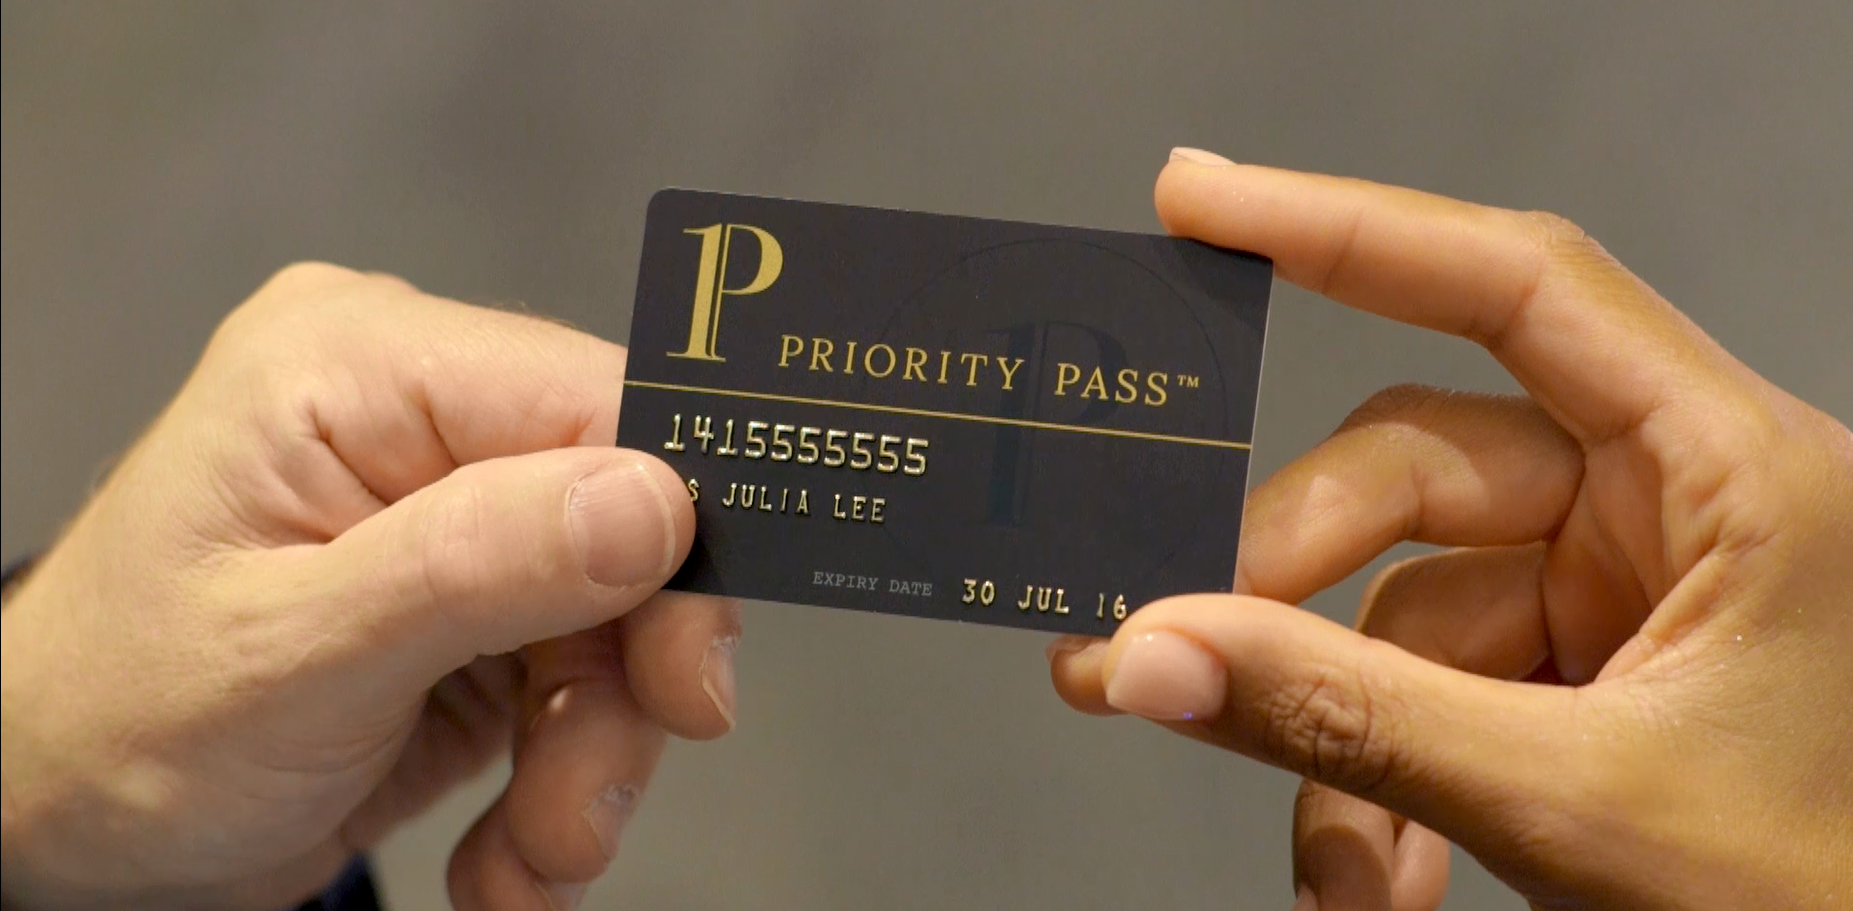 Nov 14, · Priority Pass™ is the world's largest independent airport lounge access program, providing members with quick and easy access to + /5(K).